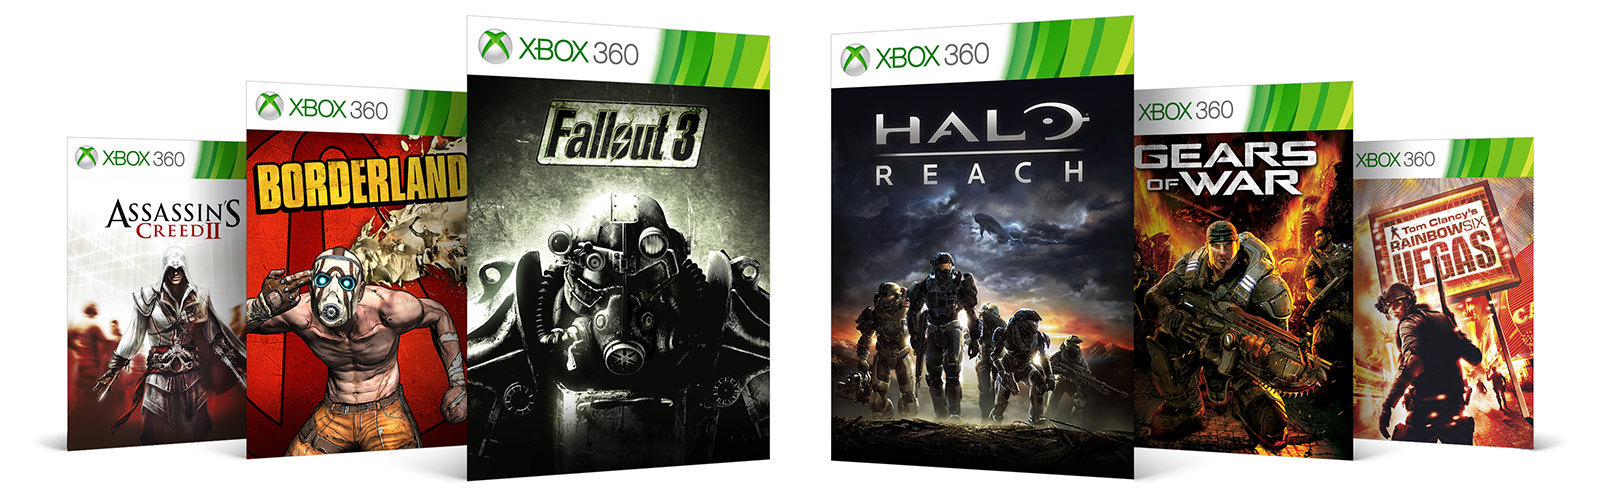 Full List of Free Xbox 360 Games - TrueAchievements